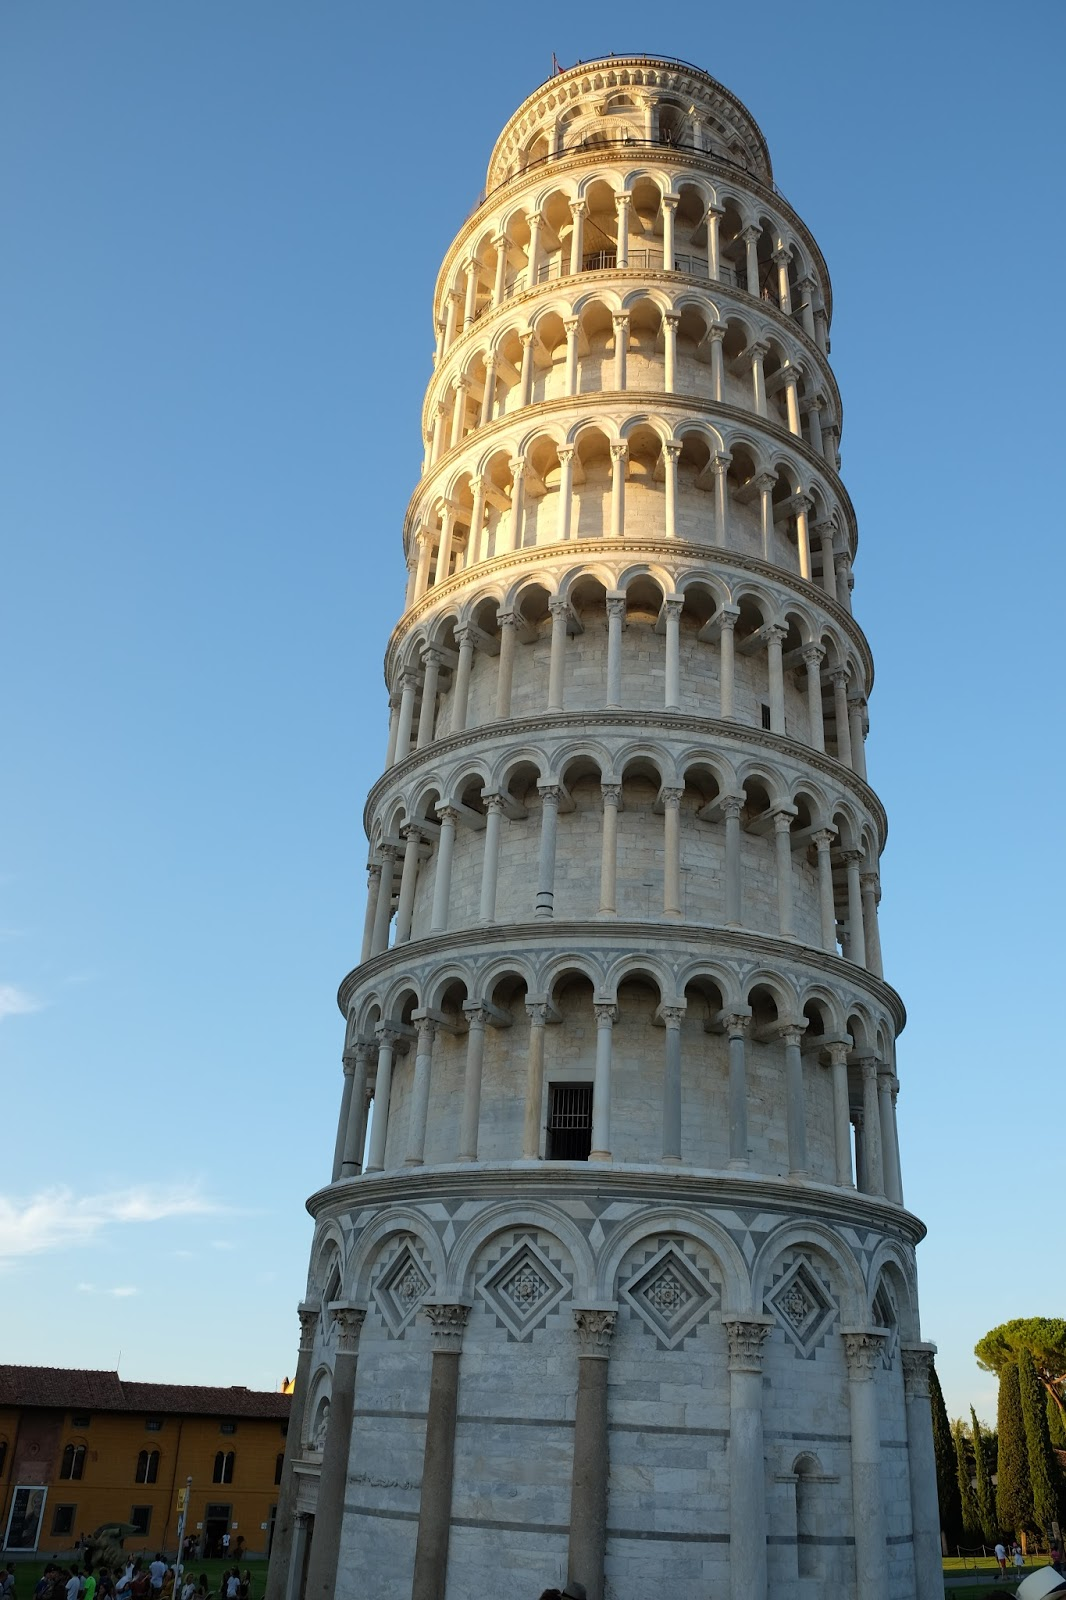 The leaning tower of pisa italy theflairsophy - Leaning tower of pisa ...